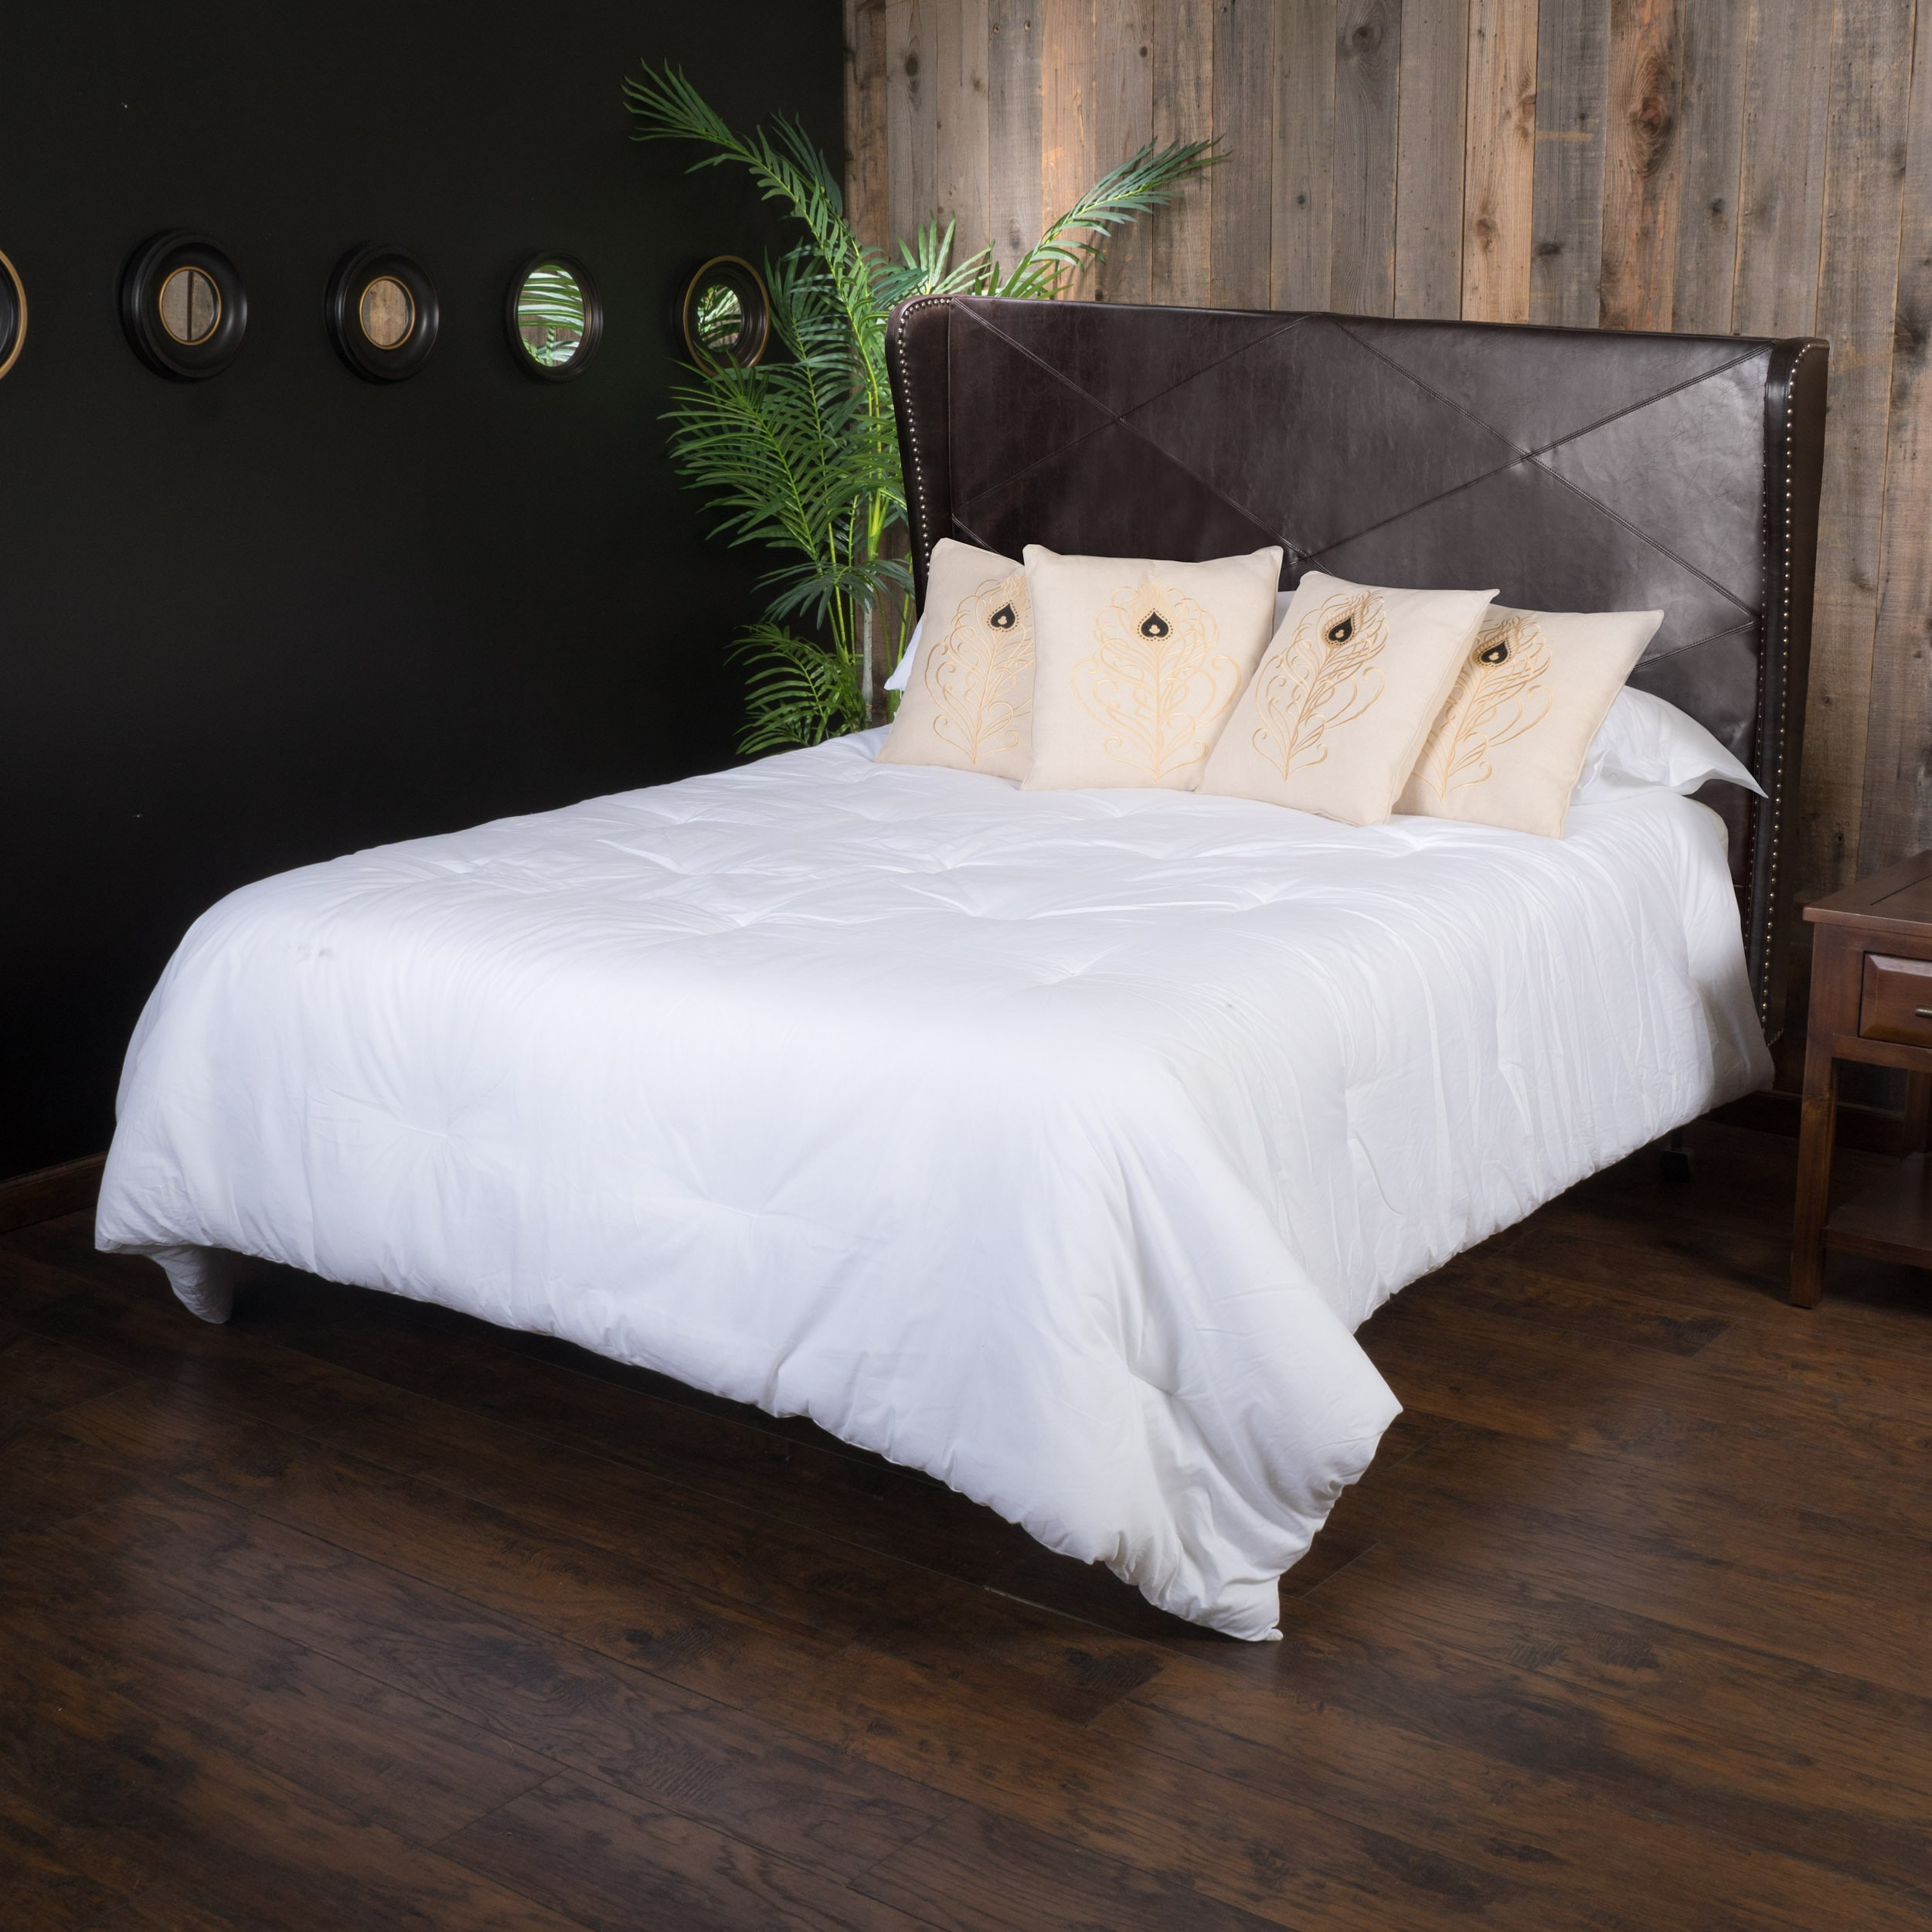 also pictures ef living ea beb dorel king enchanting fb white ad headboard lyric leather button collection a